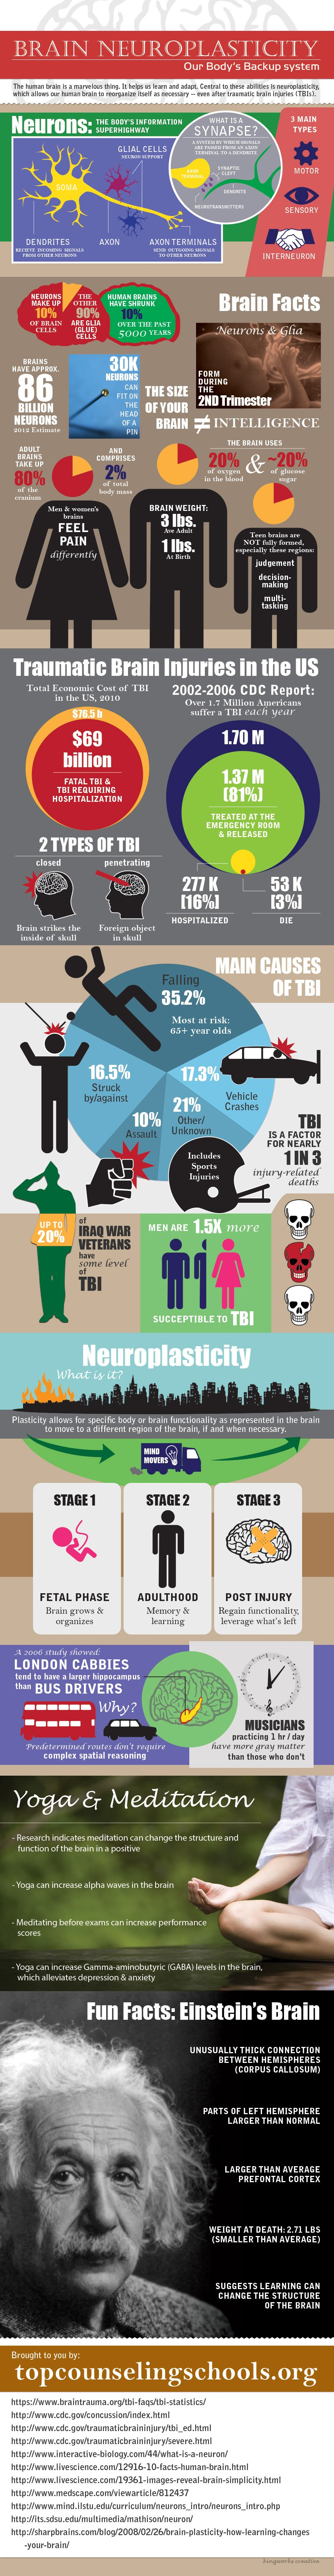 Neuroplasticity Remarkable Ability Of Brain